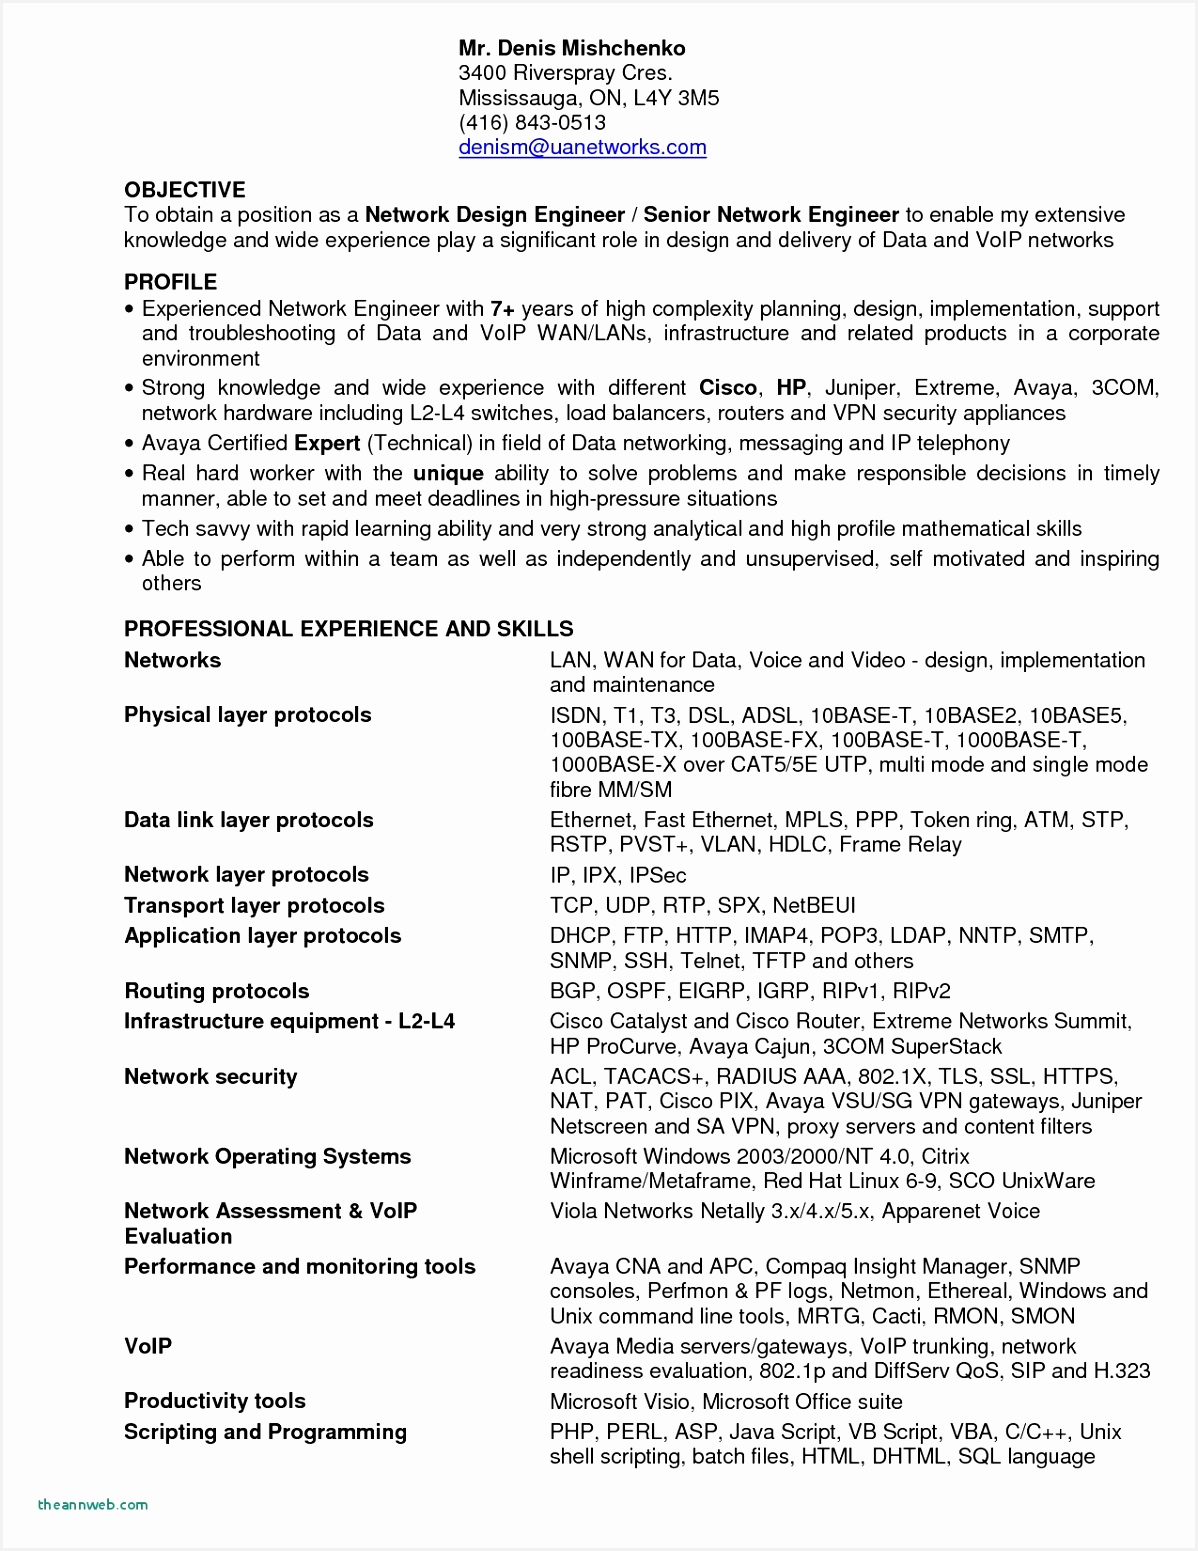 At and T Network Engineer Sample Resume Q6age Lovely Network Support Engineer Sample Resume Technical Support Engineer Of 5 at and T Network Engineer Sample Resume